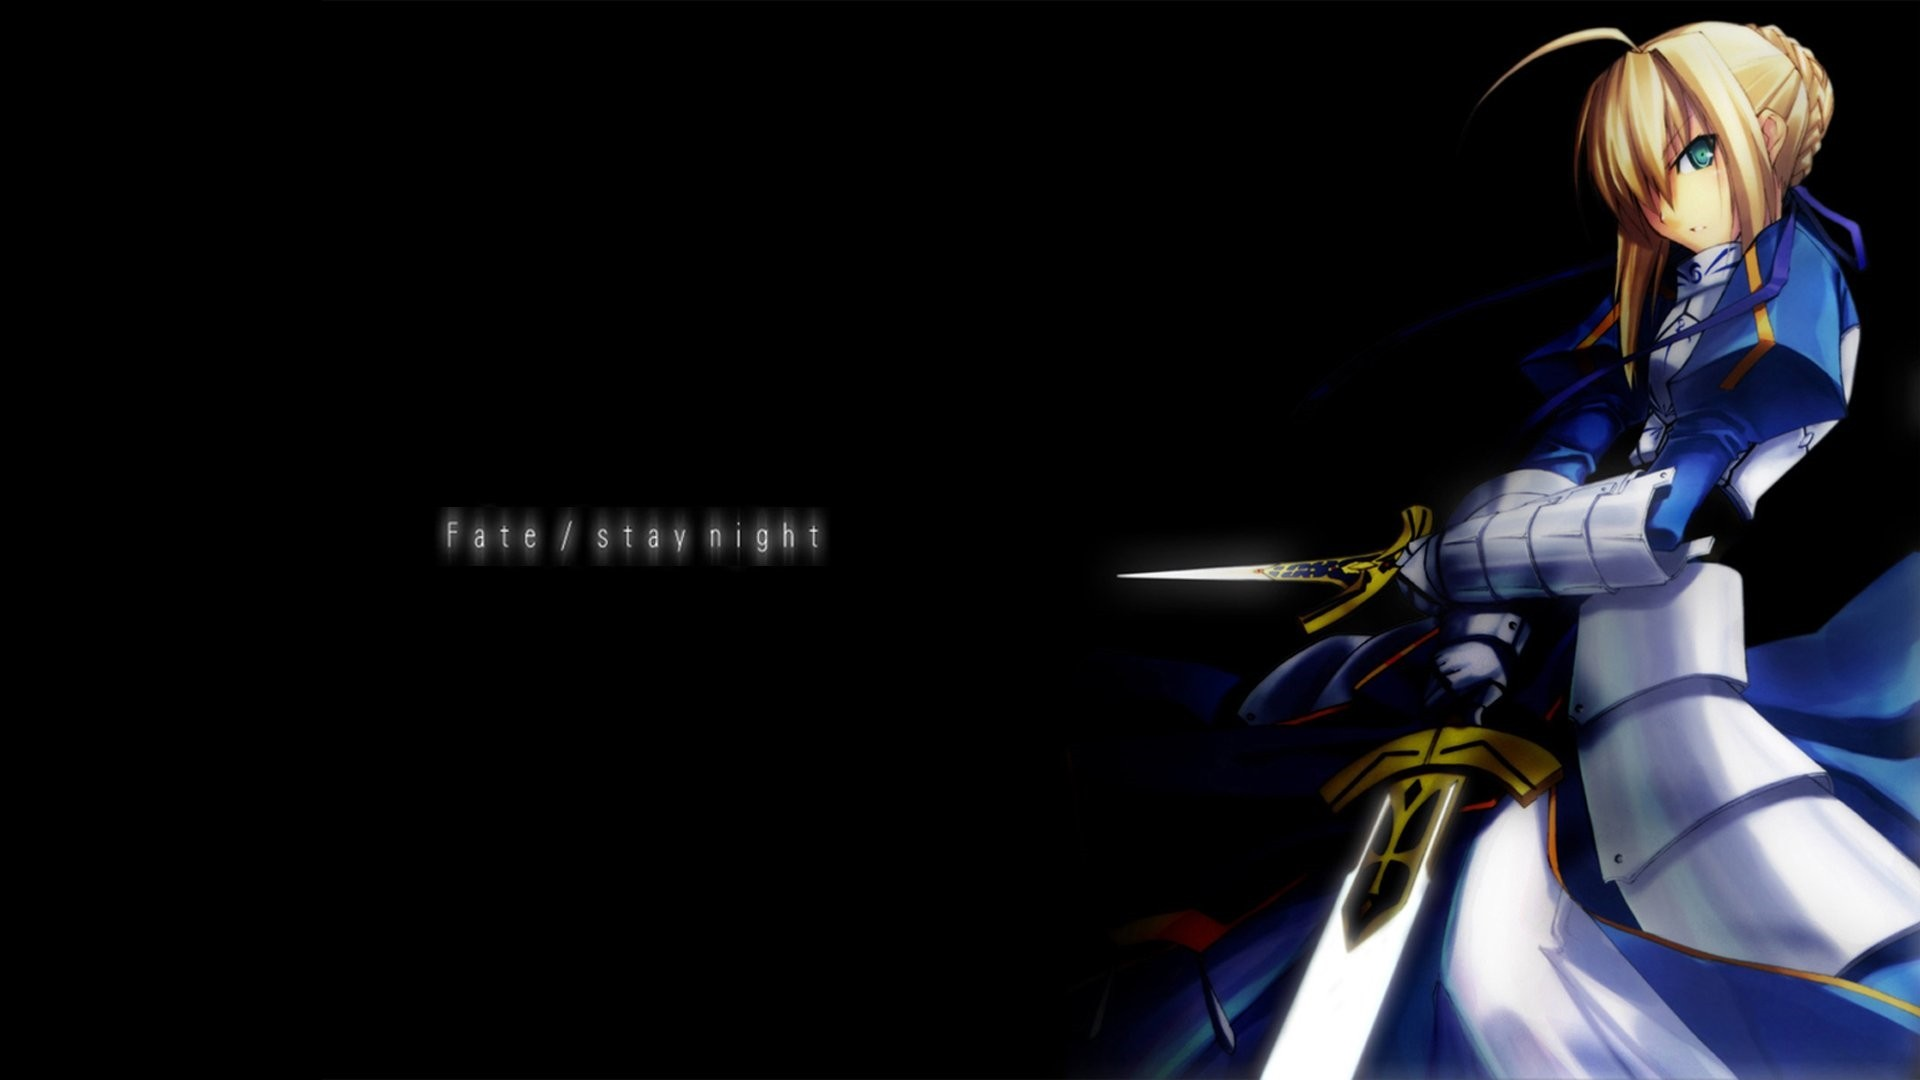 Fate Stay Night Saber Wallpaper Image